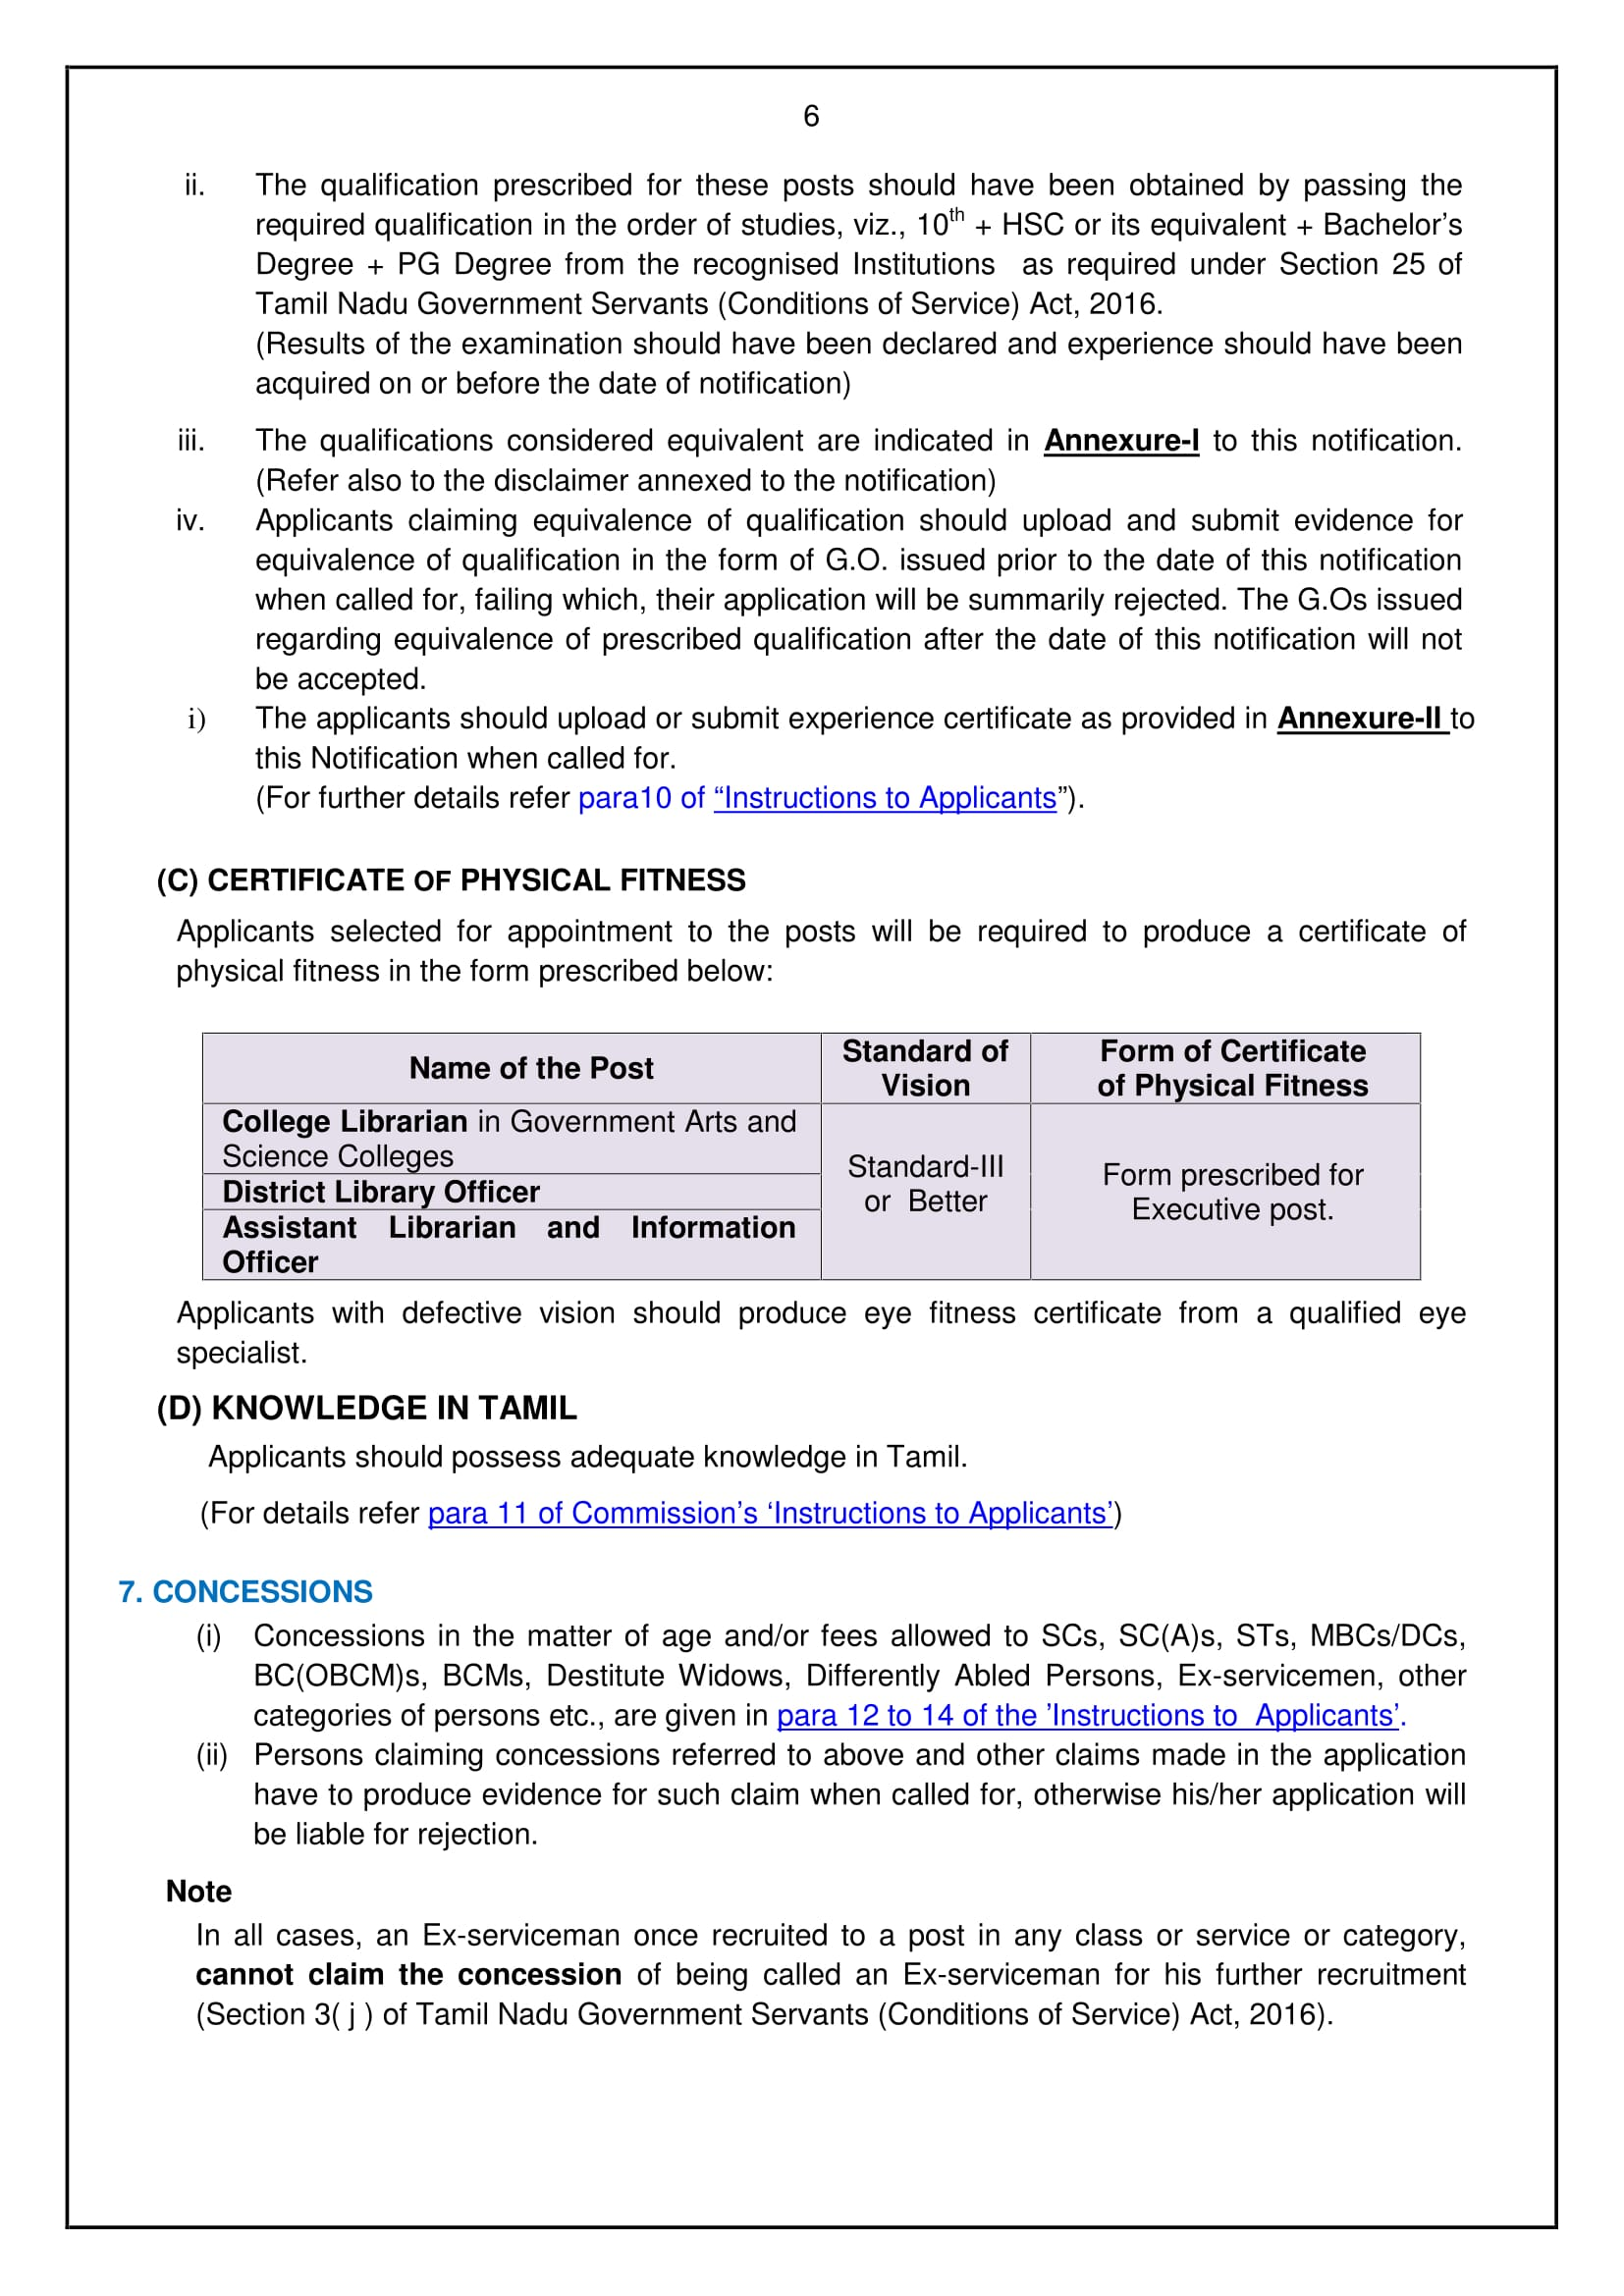 Samples resume objective statements social media manager resume standard form of appointment choice image form example ideas falaconquin